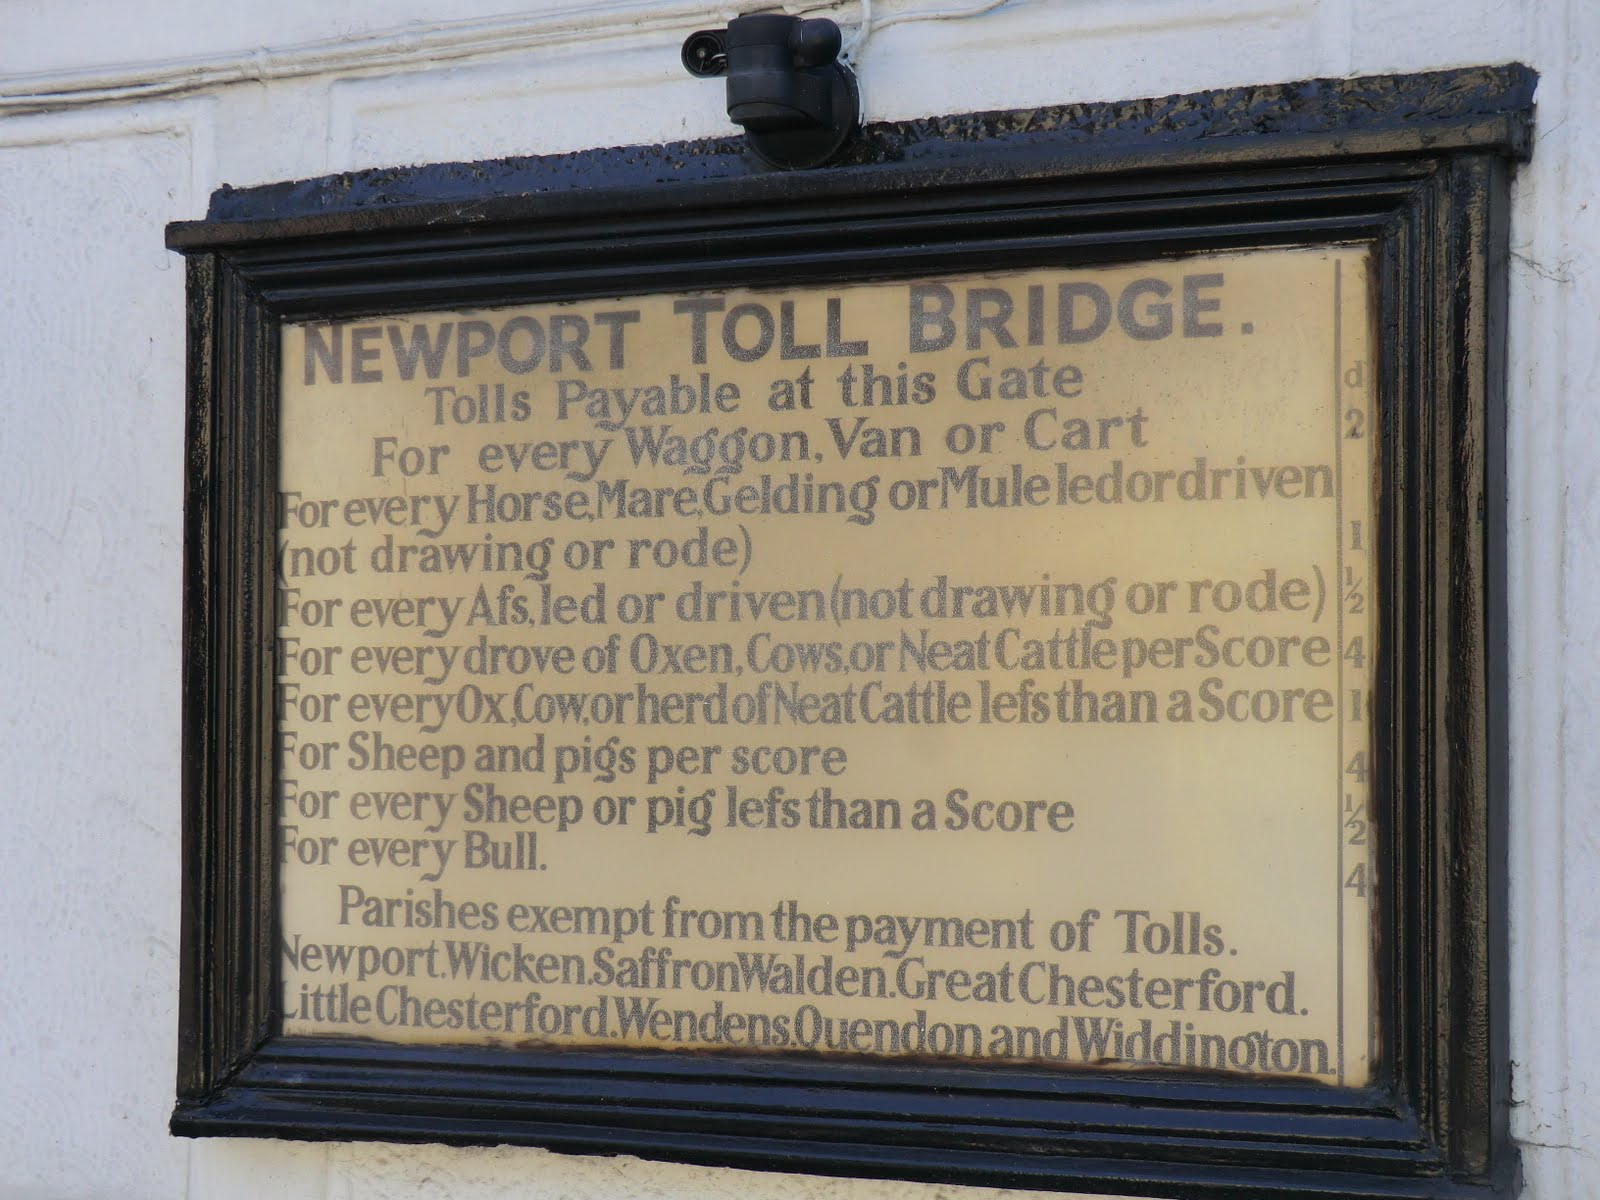 CIMG6078 Newport Toll Bridge